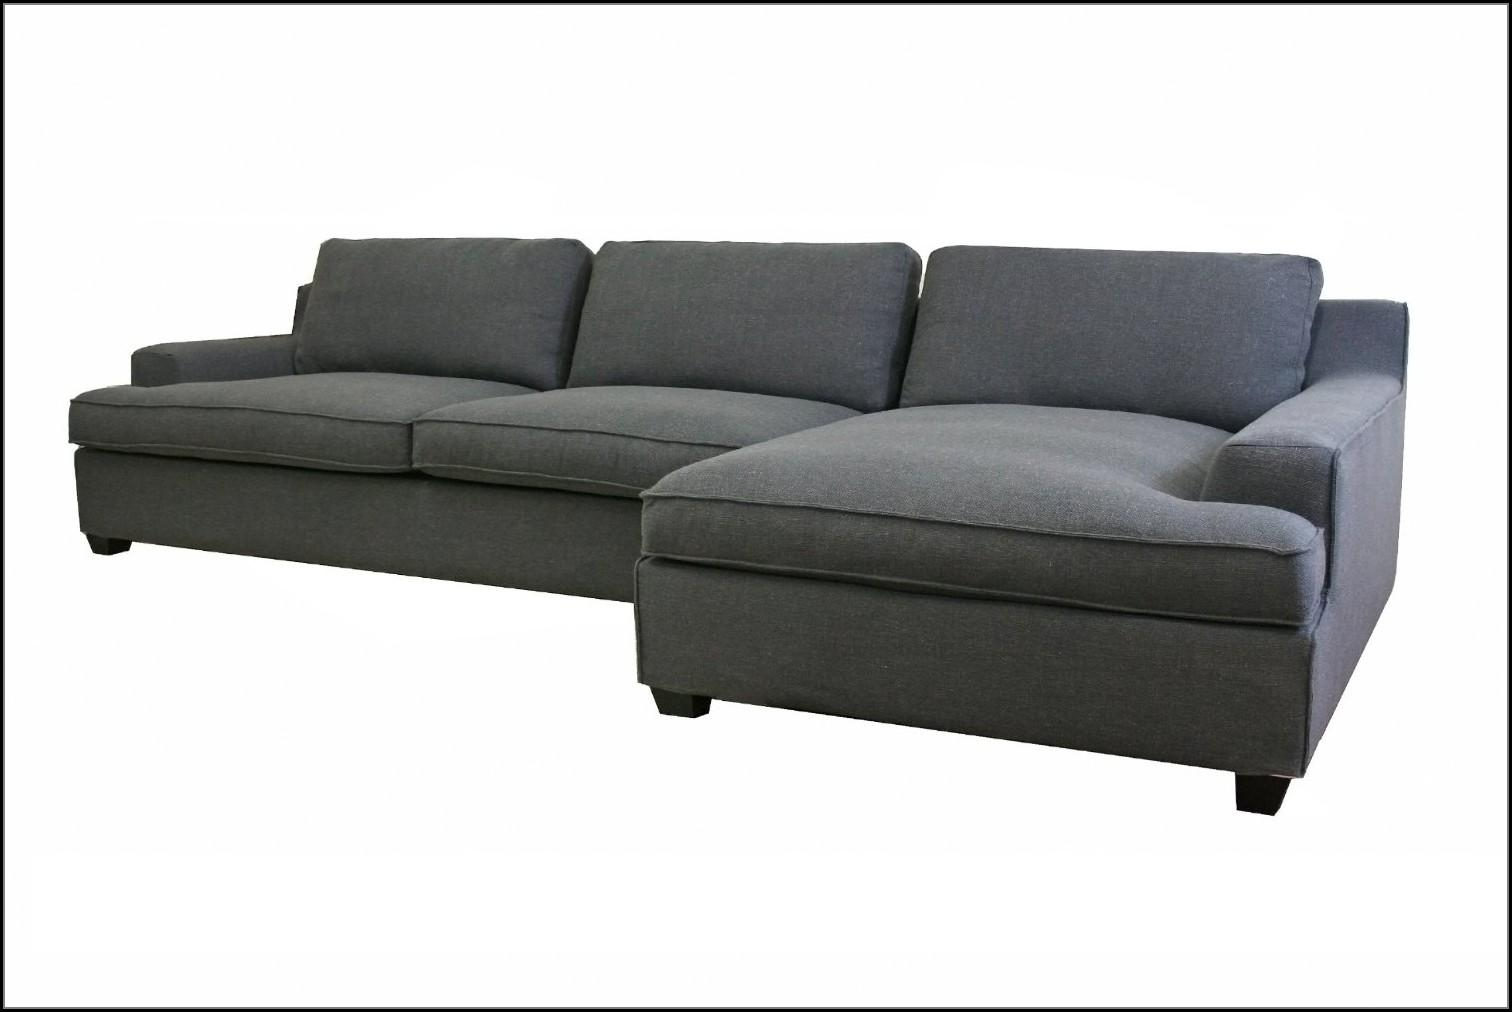 Inspirational Sectional Sofas Sleepers 84 On Most Comfortable Regarding Sleeper Sectional Sofas (View 13 of 20)